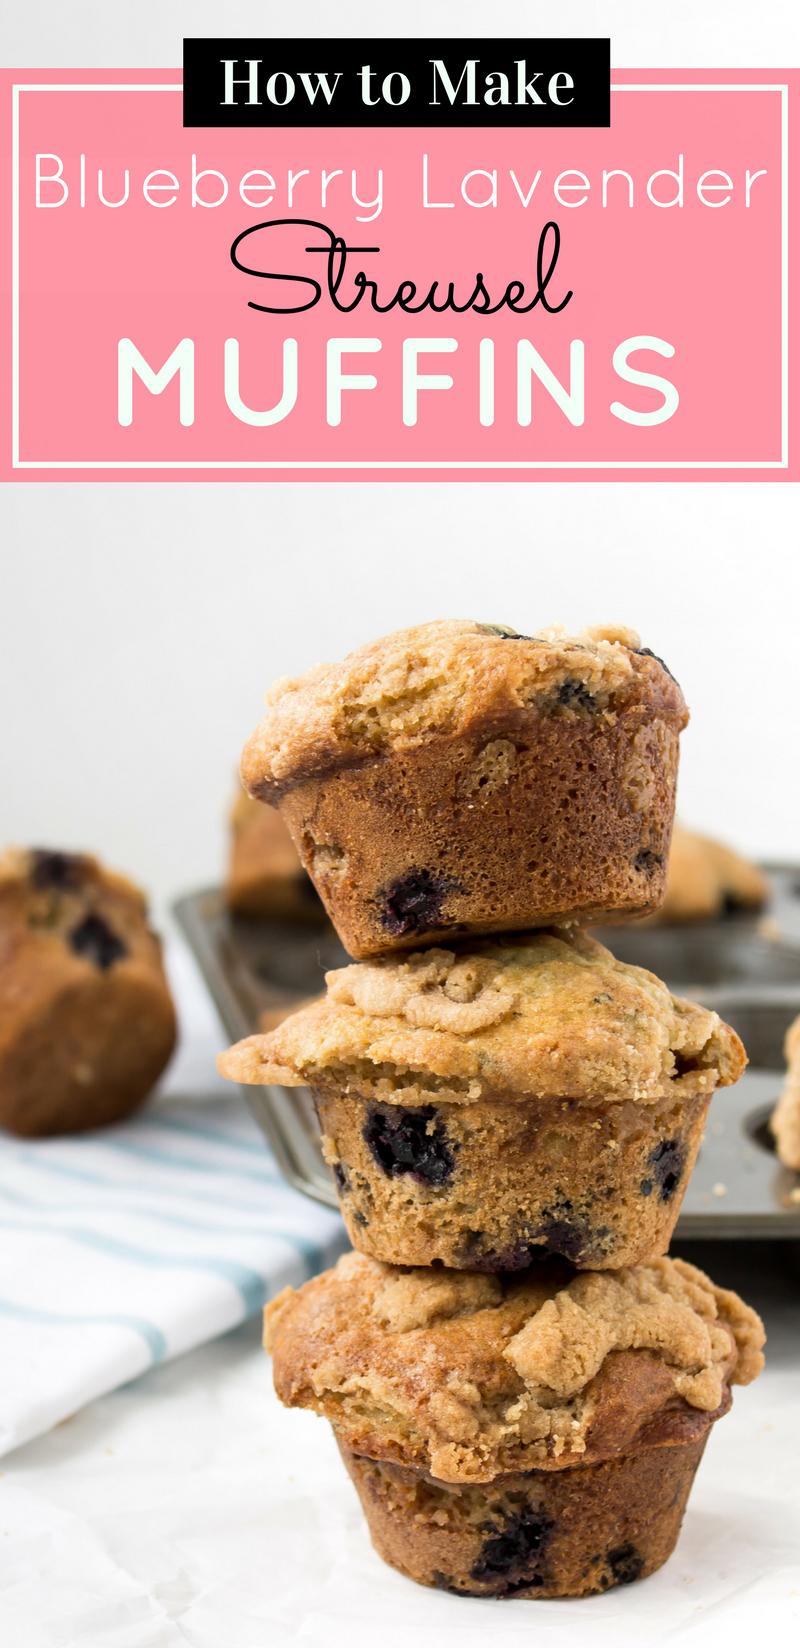 The most incredible blueberry lavender streusel muffins packed with fresh blueberries, a hint of delicate lavender, and topped with a buttery-sweet streusel. YUM. Click through for the recipe. | glitterinc.com | @glitterinc